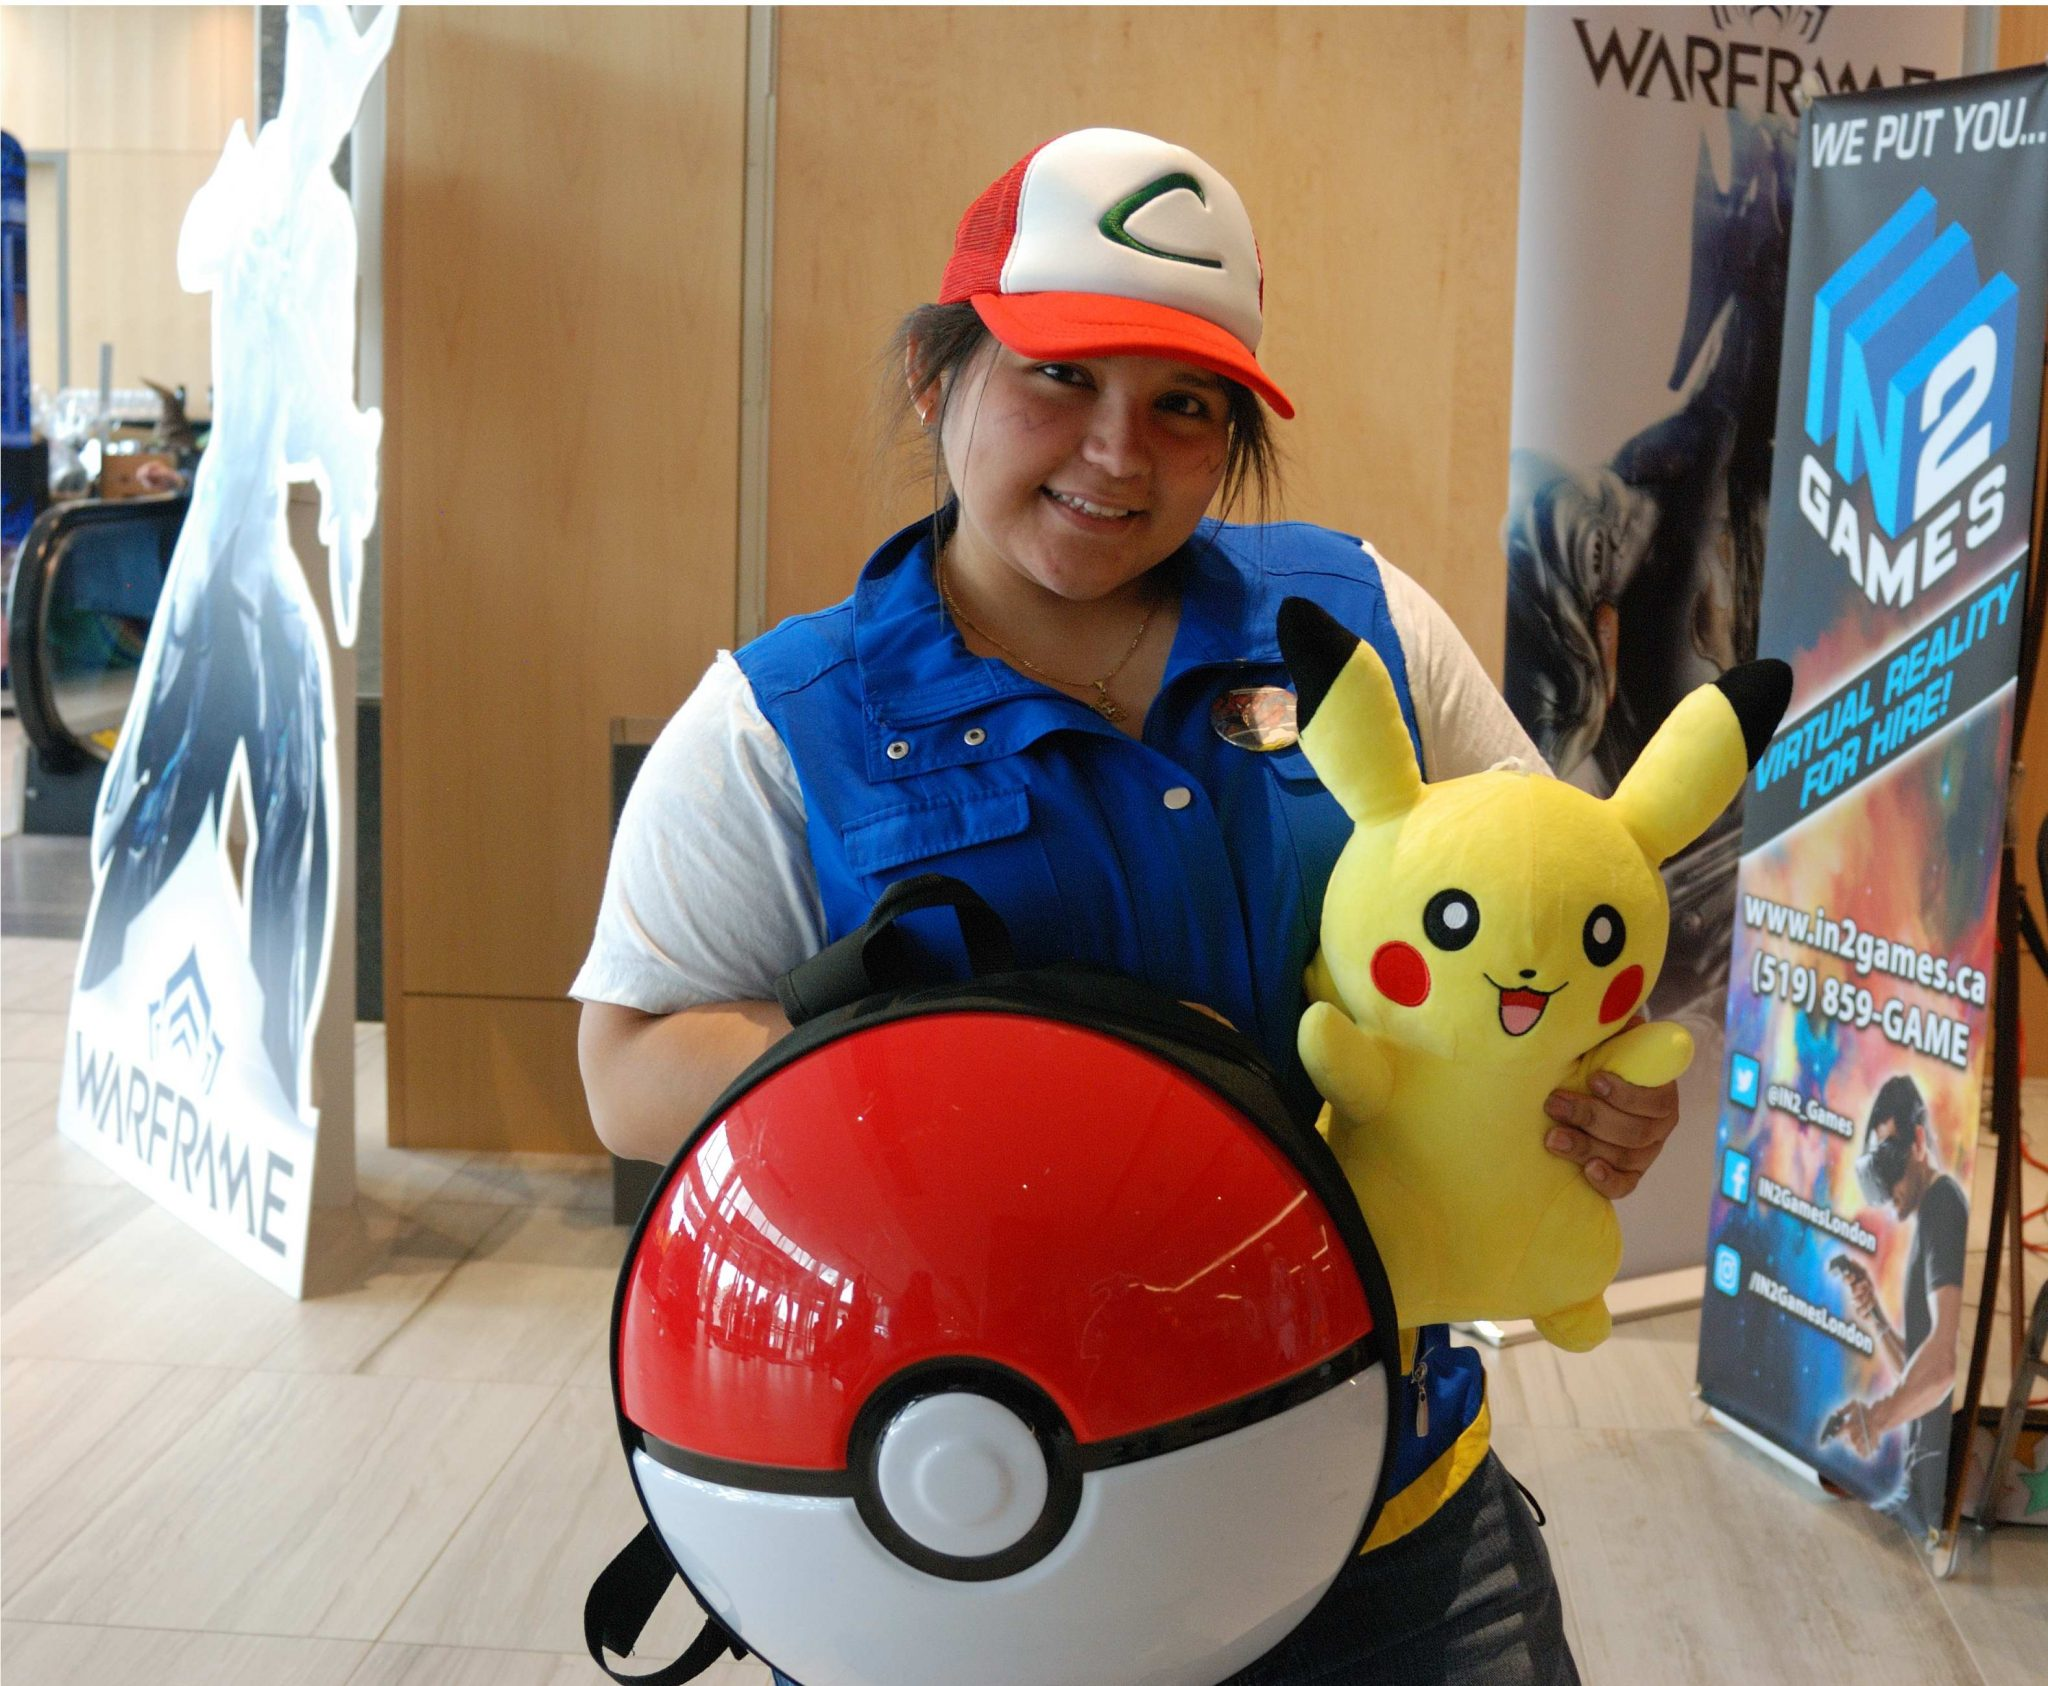 Forest City Comicon 2018. Jennifer Carpio cosplaying as Ash Ketchum from Pokemon at Forest City Comicon in London, Ontario.